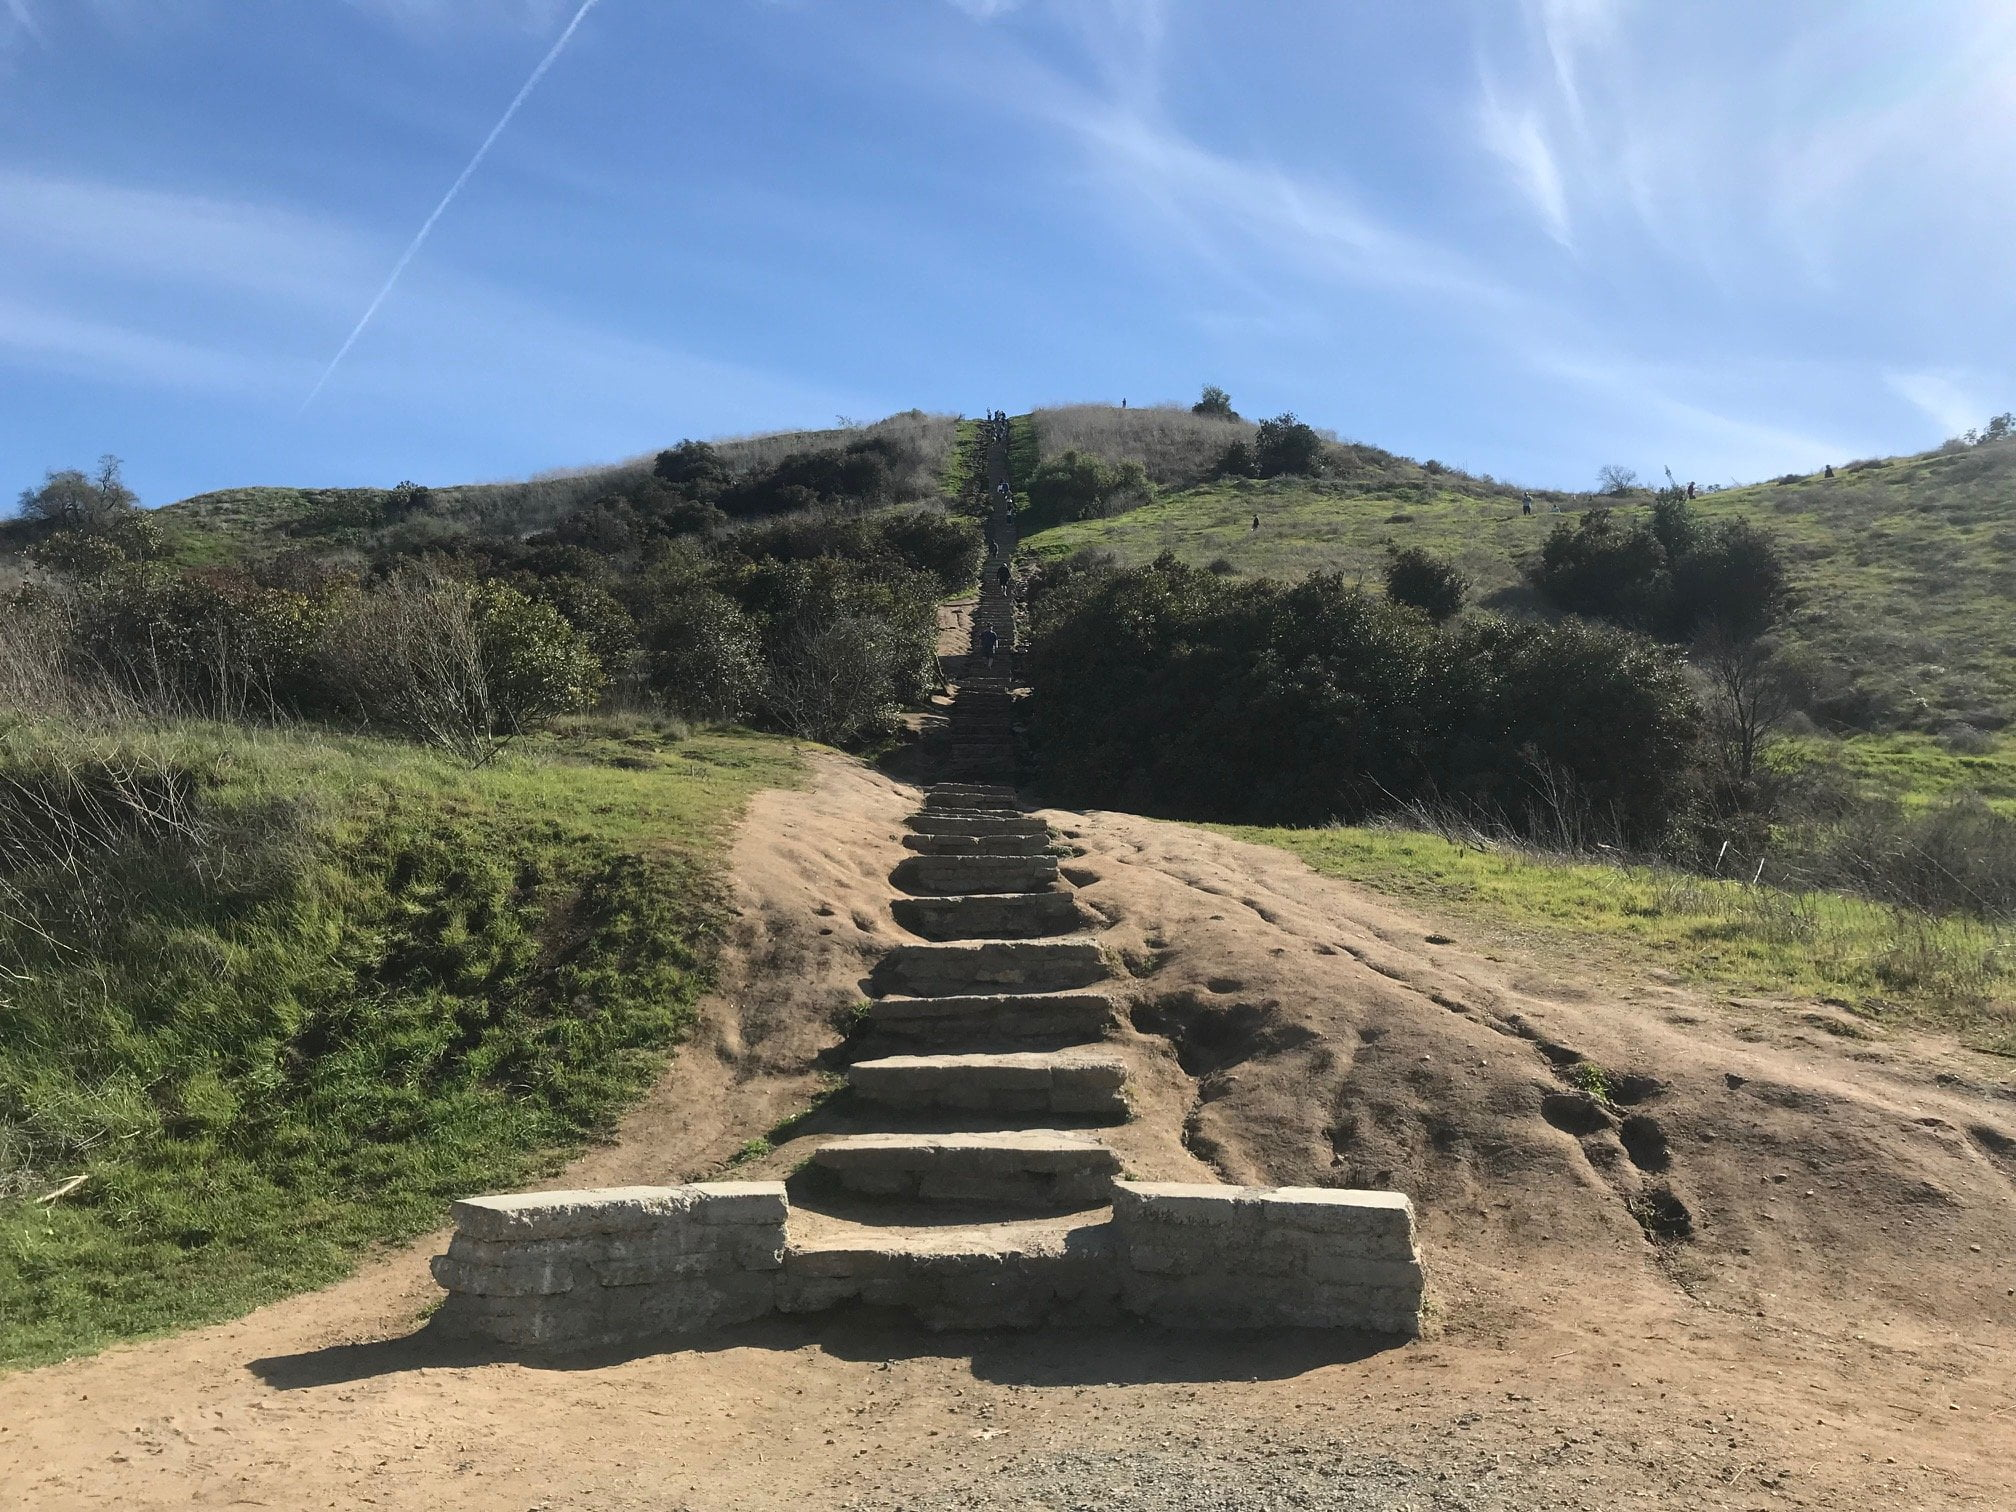 Culver City Staircase up the mount